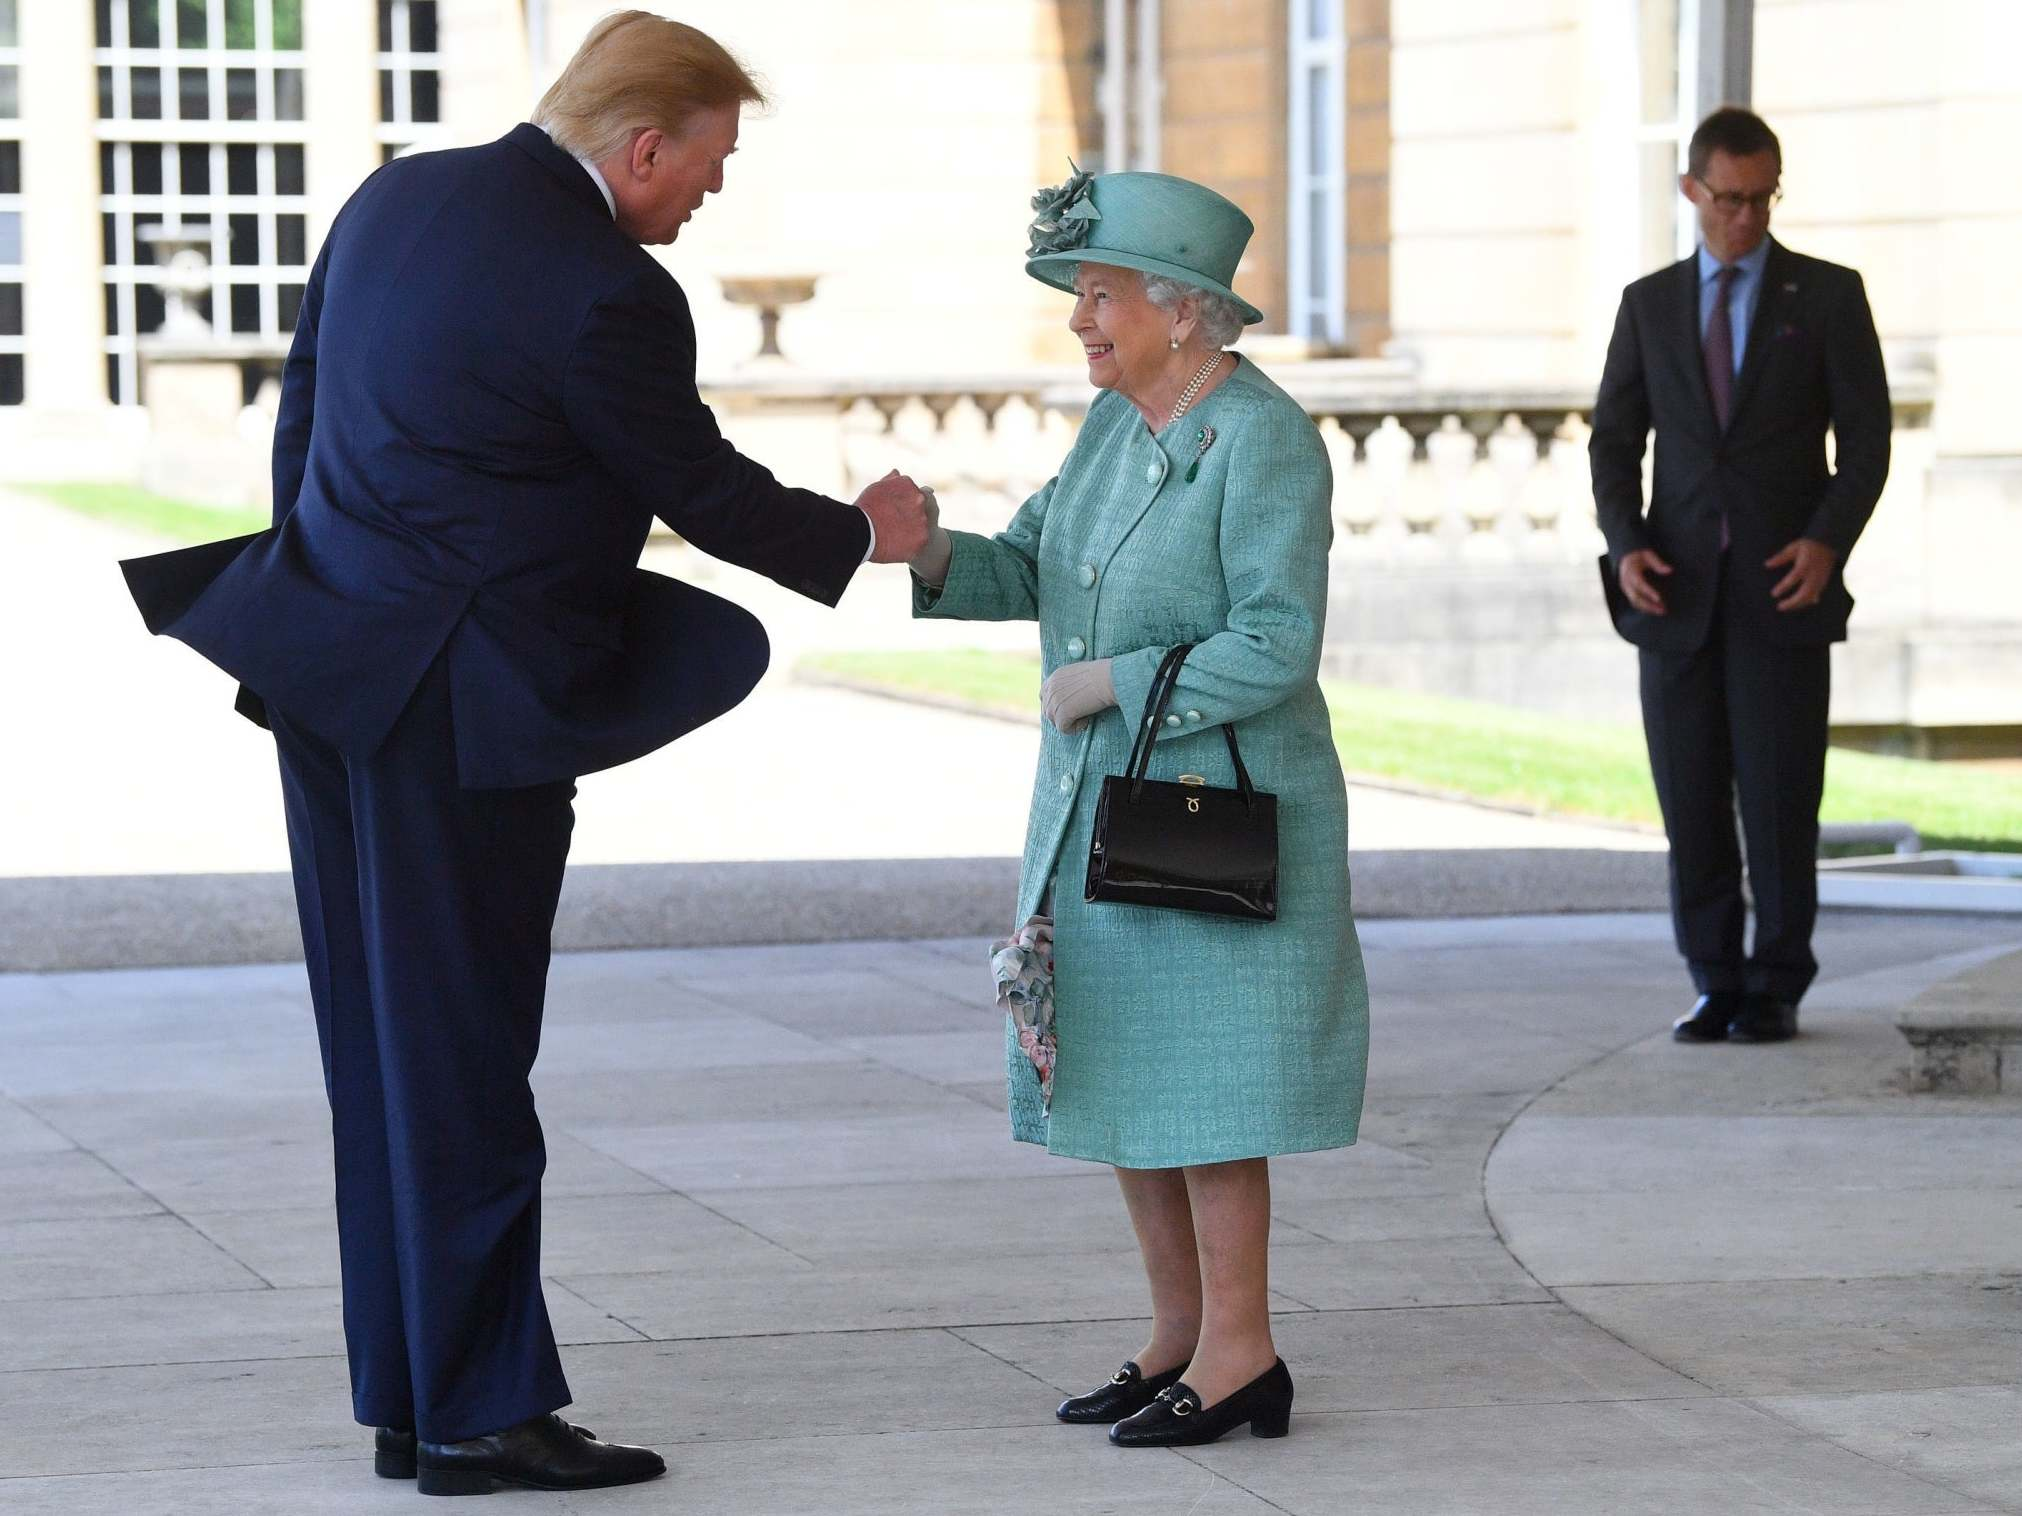 Trump UK visit: President has state banquet with Queen as Labour announces Corbyn will speak at protest